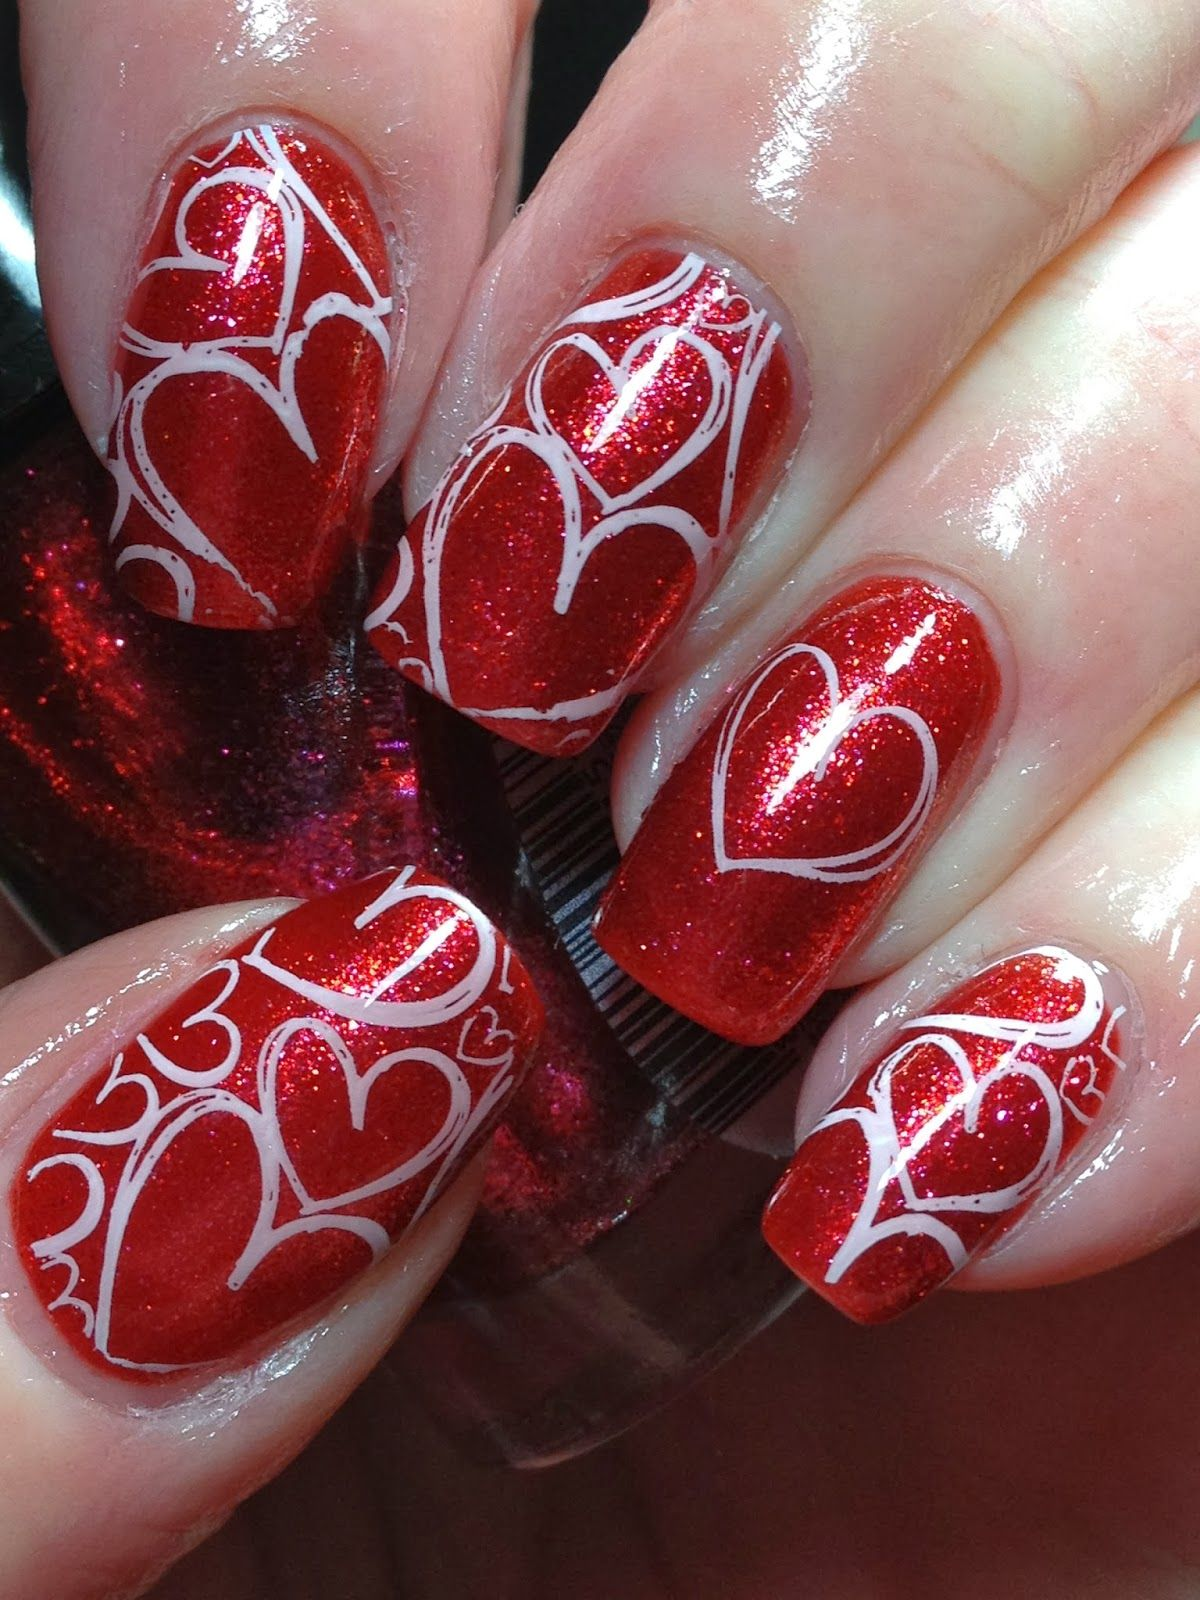 Quick Hearts for Valentines - Canadian Nail Fanatic - Gorgeous Metallic Nail Art Designs That Will Shimmer And Shine You